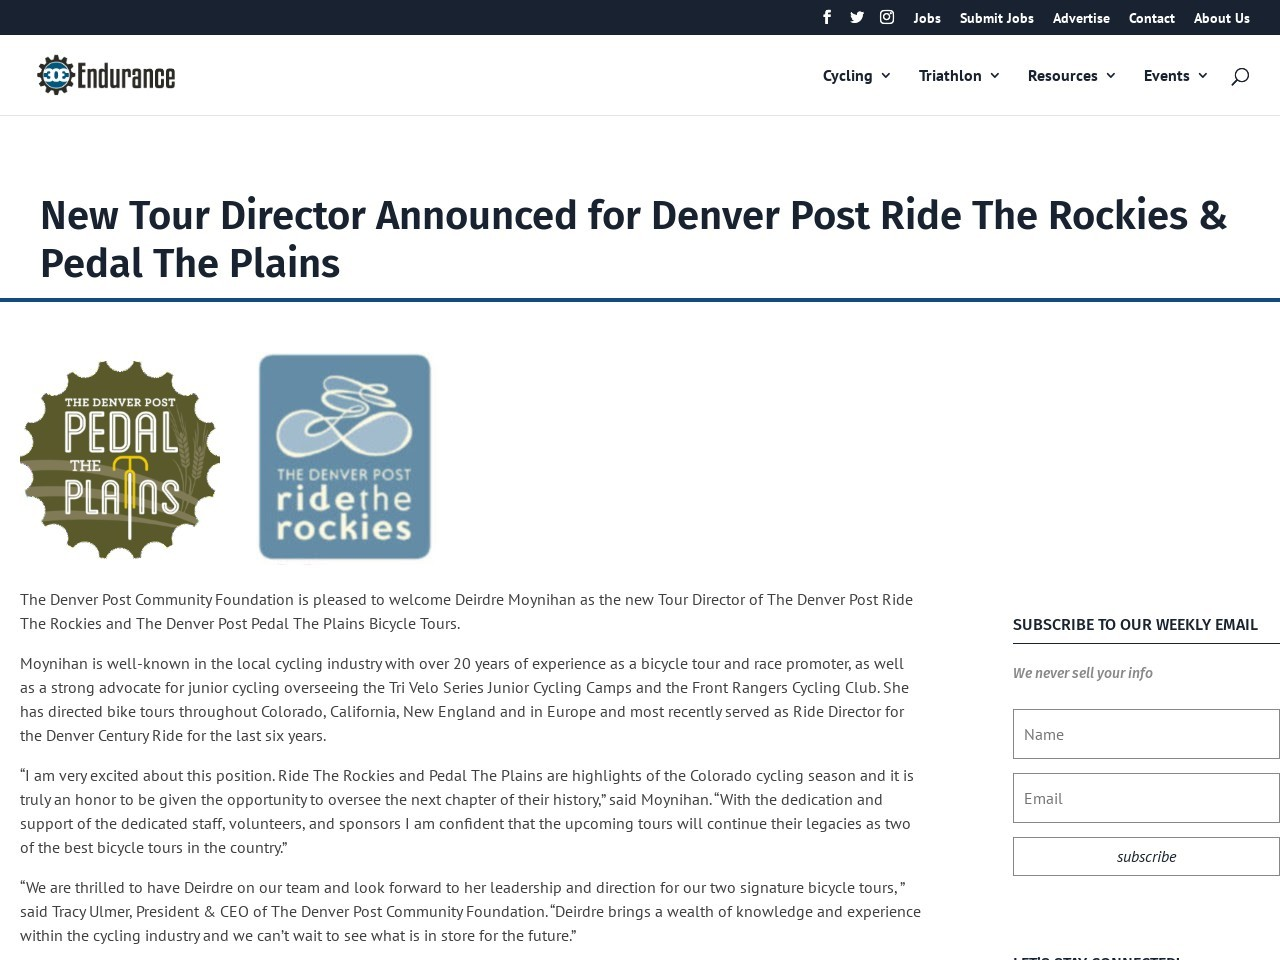 New Tour Director Announced for Denver Post Ride The Rockies & Pedal The Plains